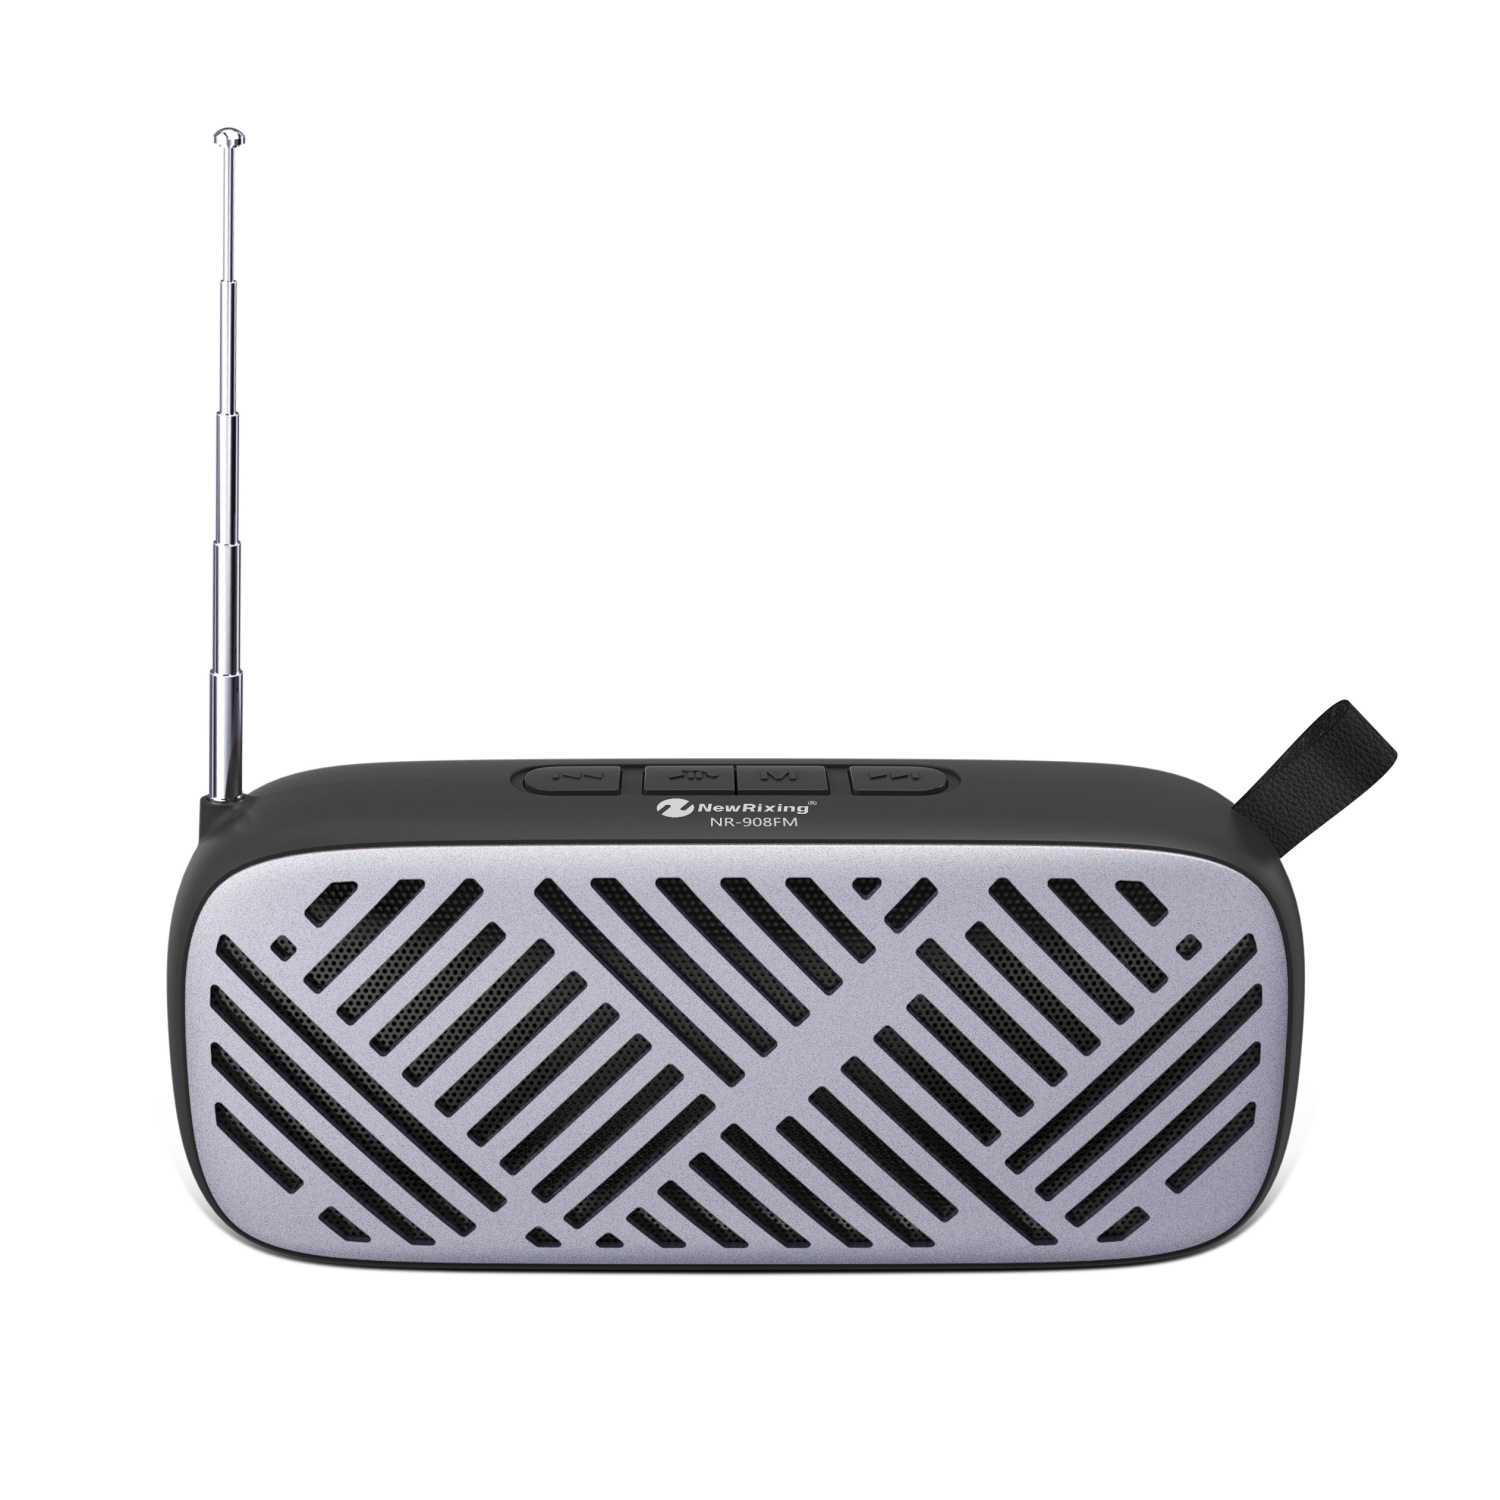 NewRixing NR-908FM Mobile Speaker Manufacturer